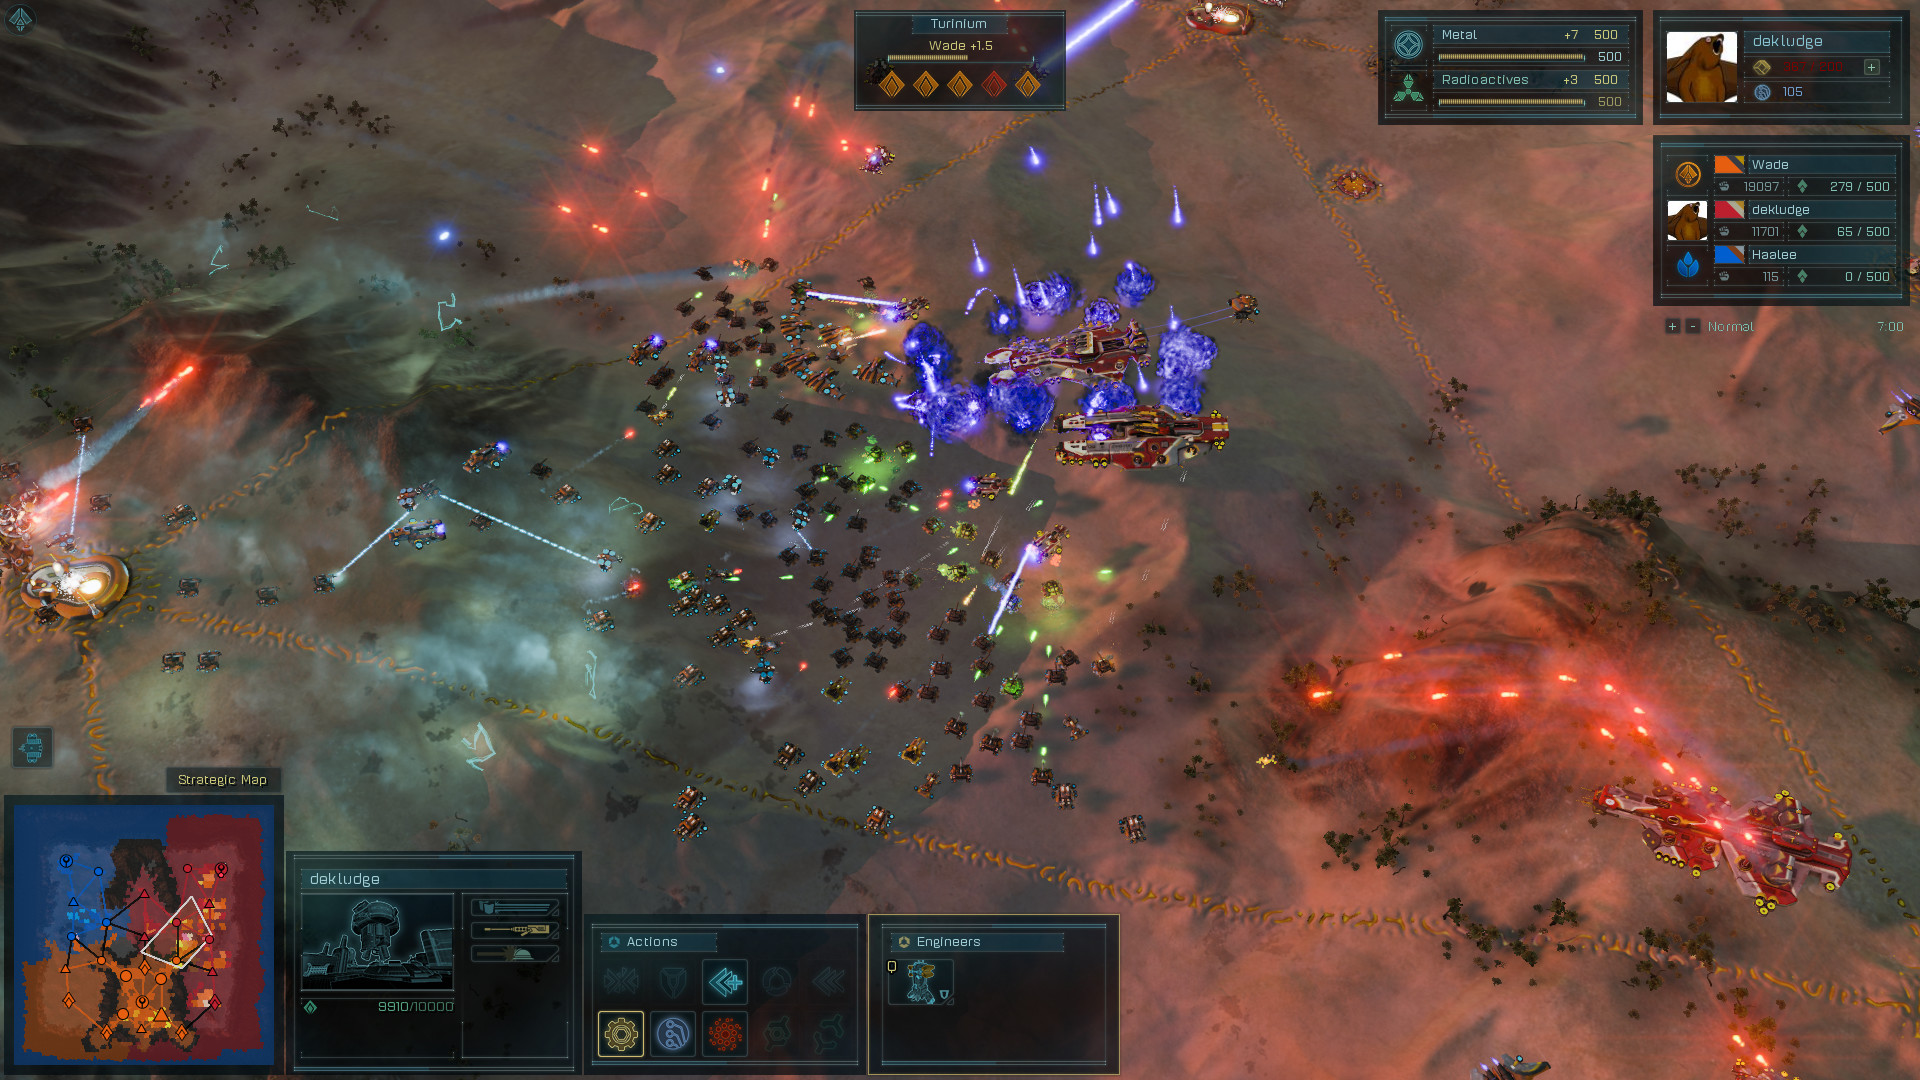 Ashes of the Singularity: Escalation - Turtle Wars DLC screenshot